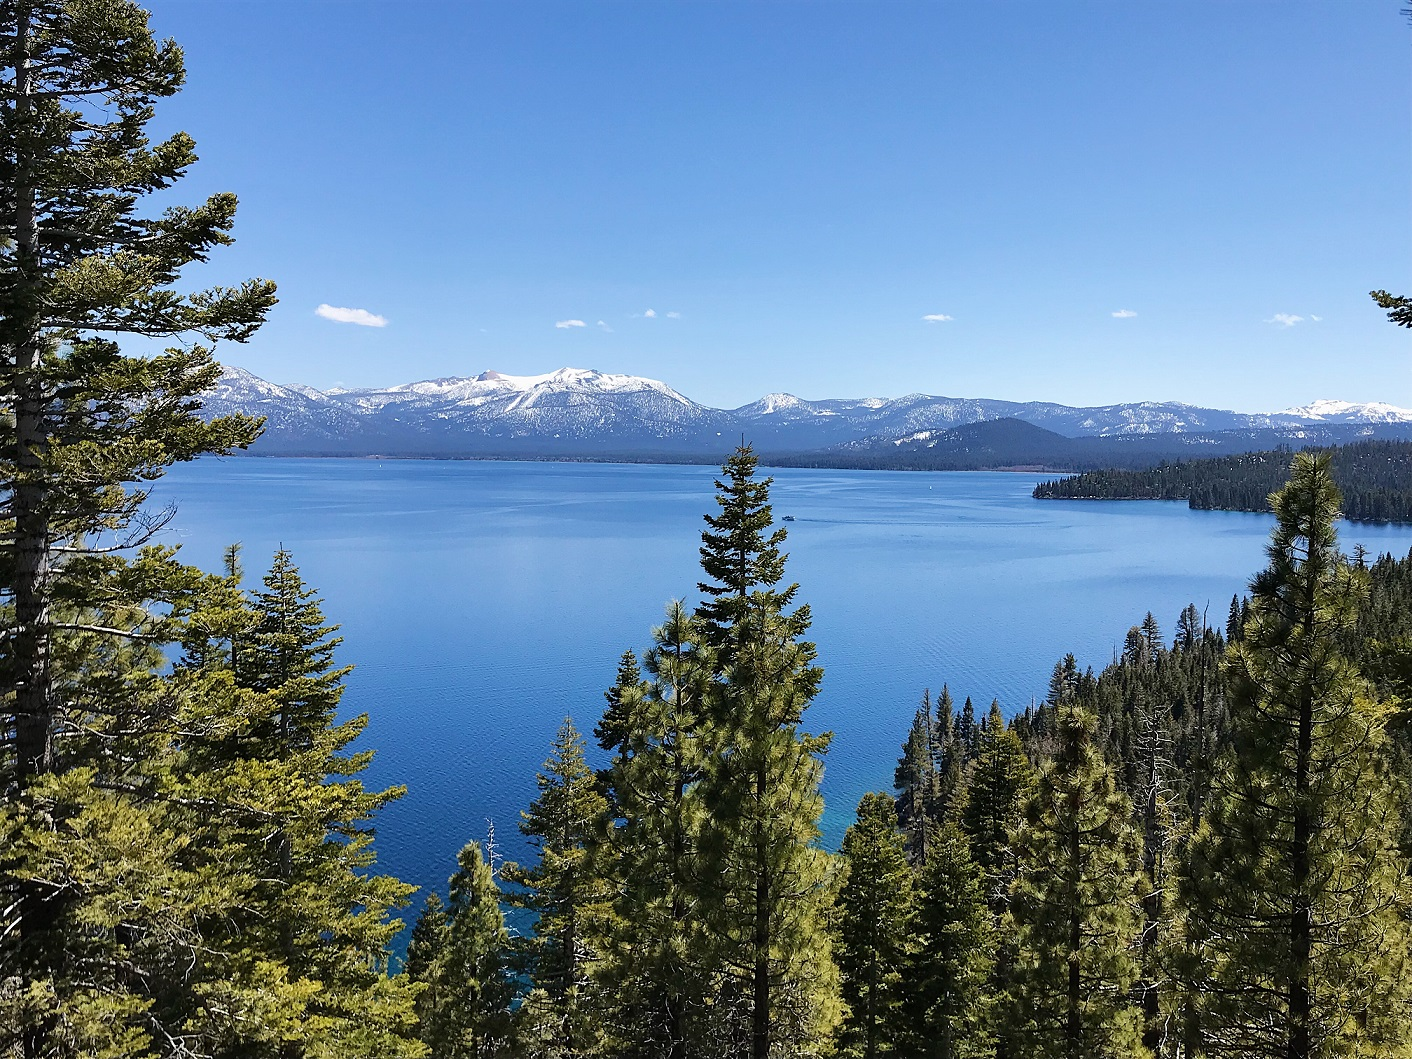 Things to do in labor day: Lake Tahoe, Nevada, California.